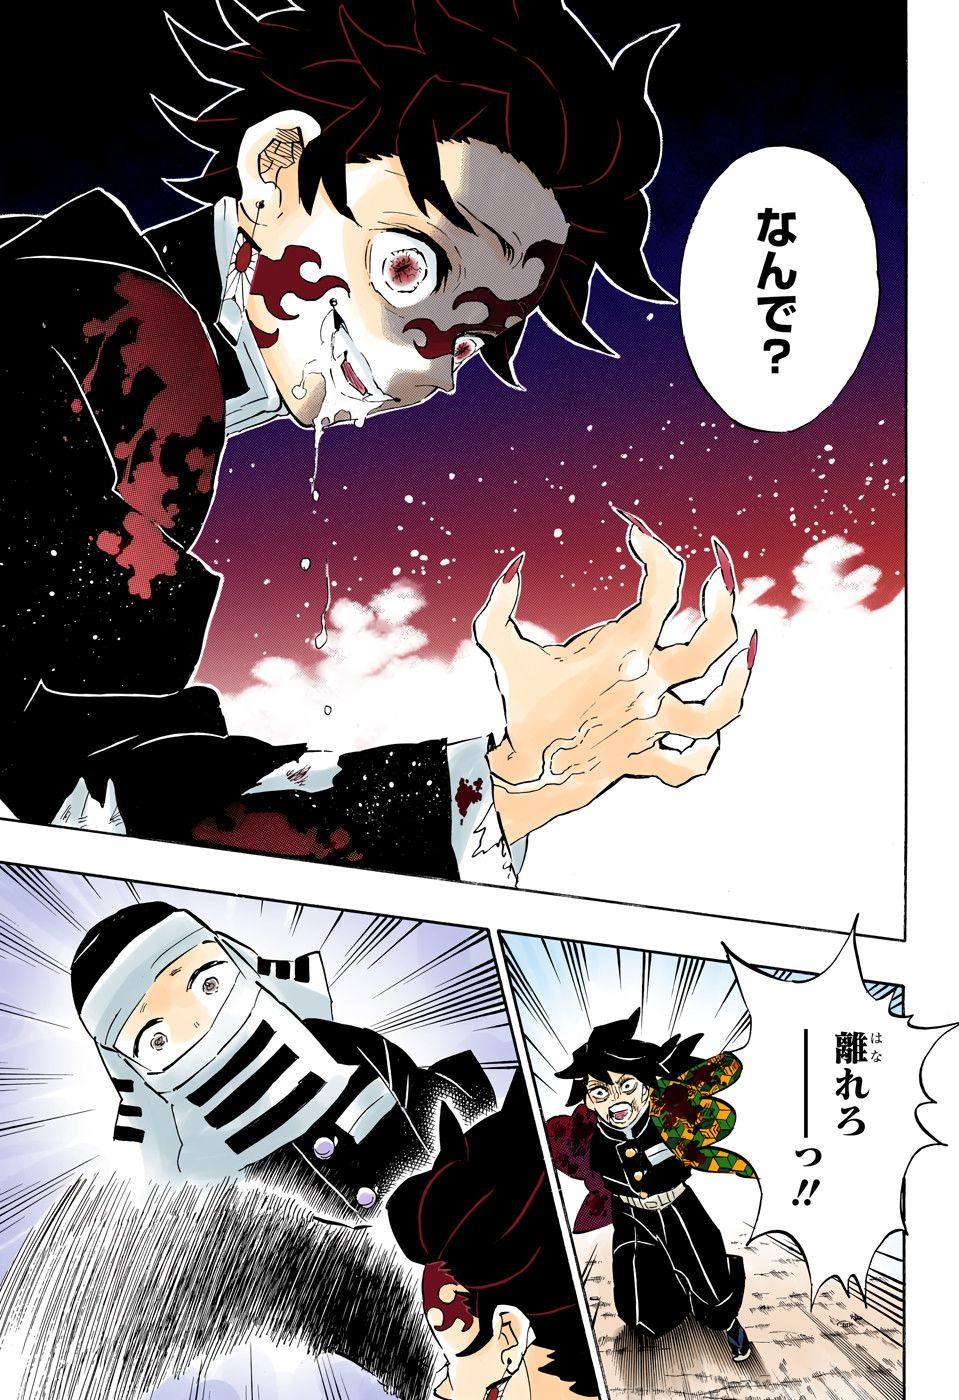 Weekly Shōnen Jump 週刊少年ジャンプ Chapter 202019 Page 484